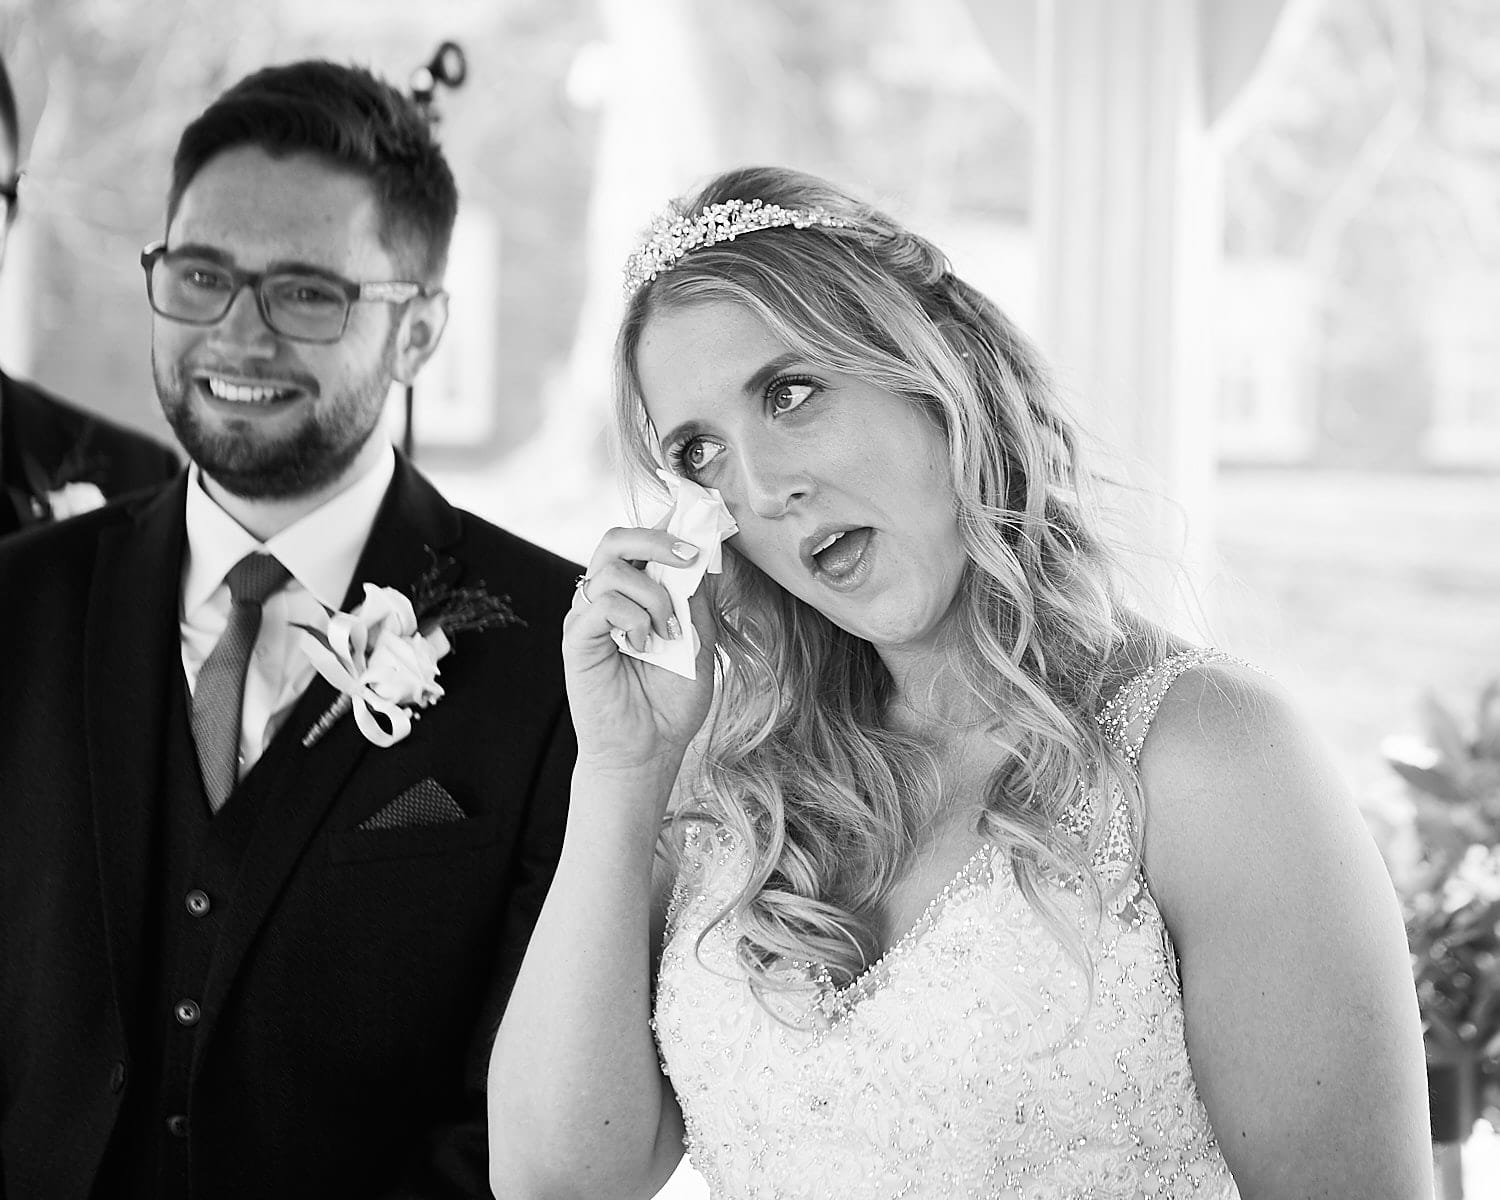 A bride wipes away a tear during her wedding ceremony at `Kenwick Park, Louth